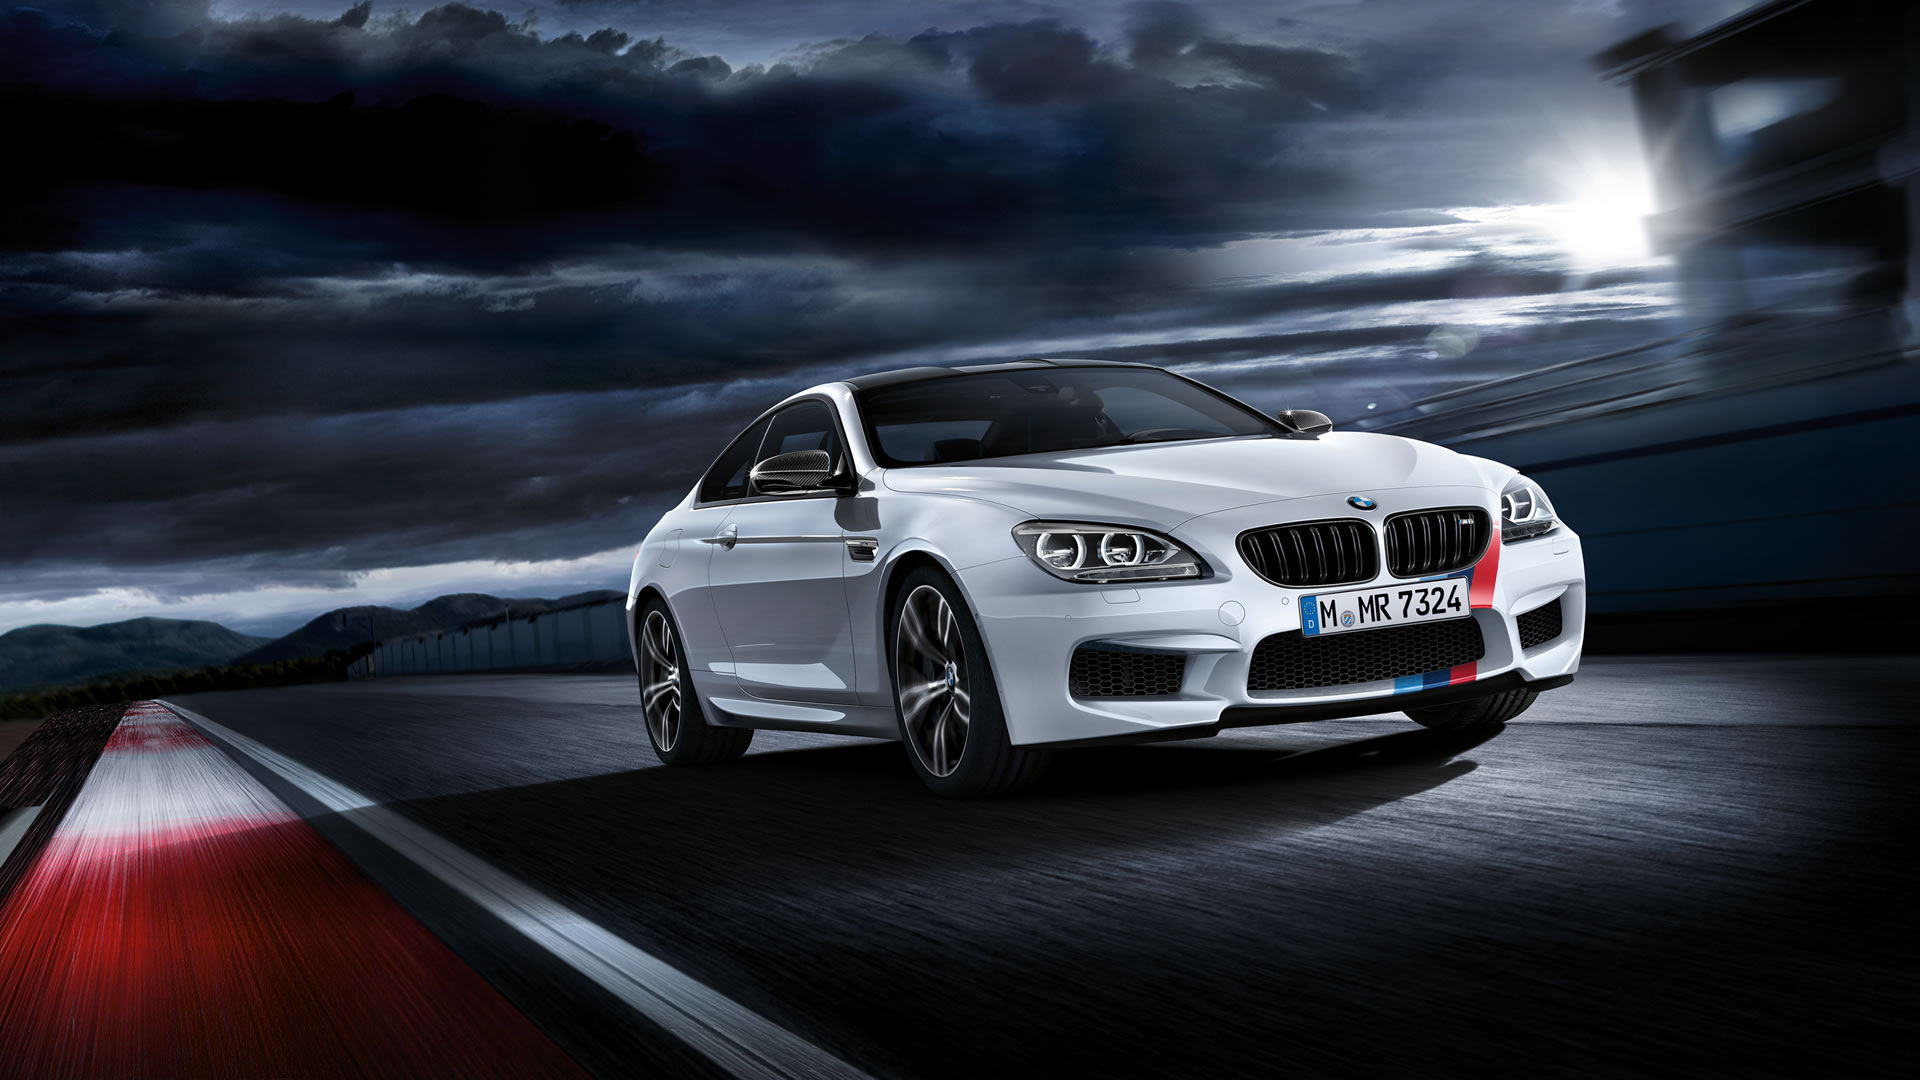 2014 BMW M6 Coupe M Performance Wallpaper - 1920 x 1080